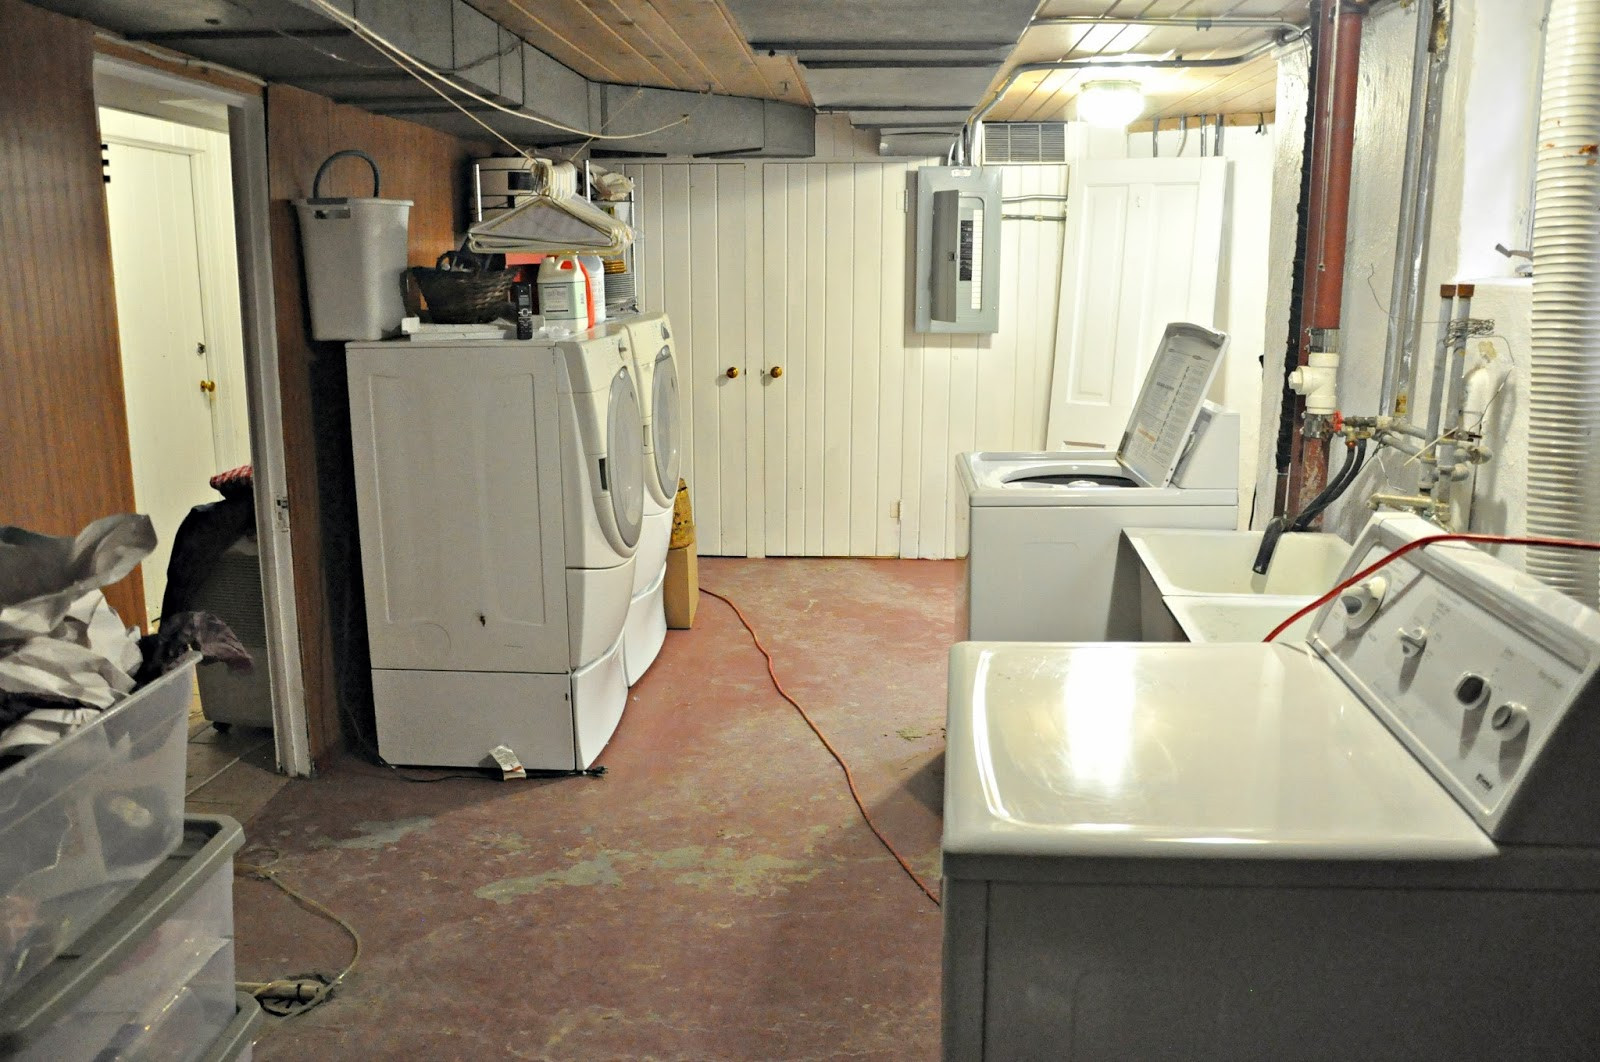 Best ideas about Basement Laundry Rooms . Save or Pin 22 Basement Laundry Room Ideas to Try in Your House Now.